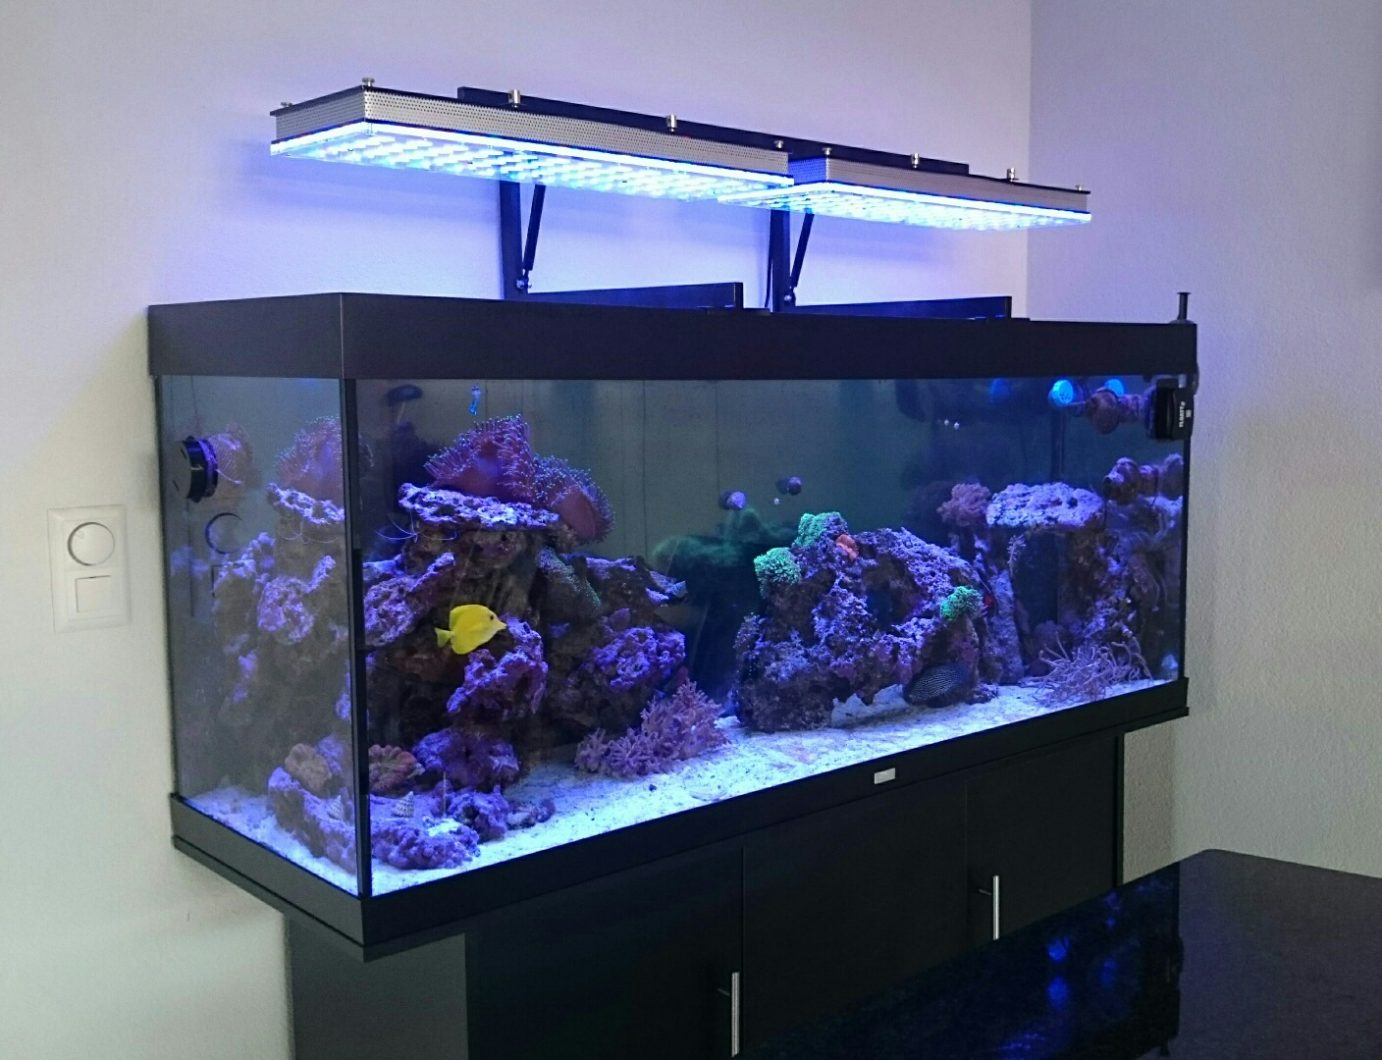 Mounting Arm aquarium LED lighting